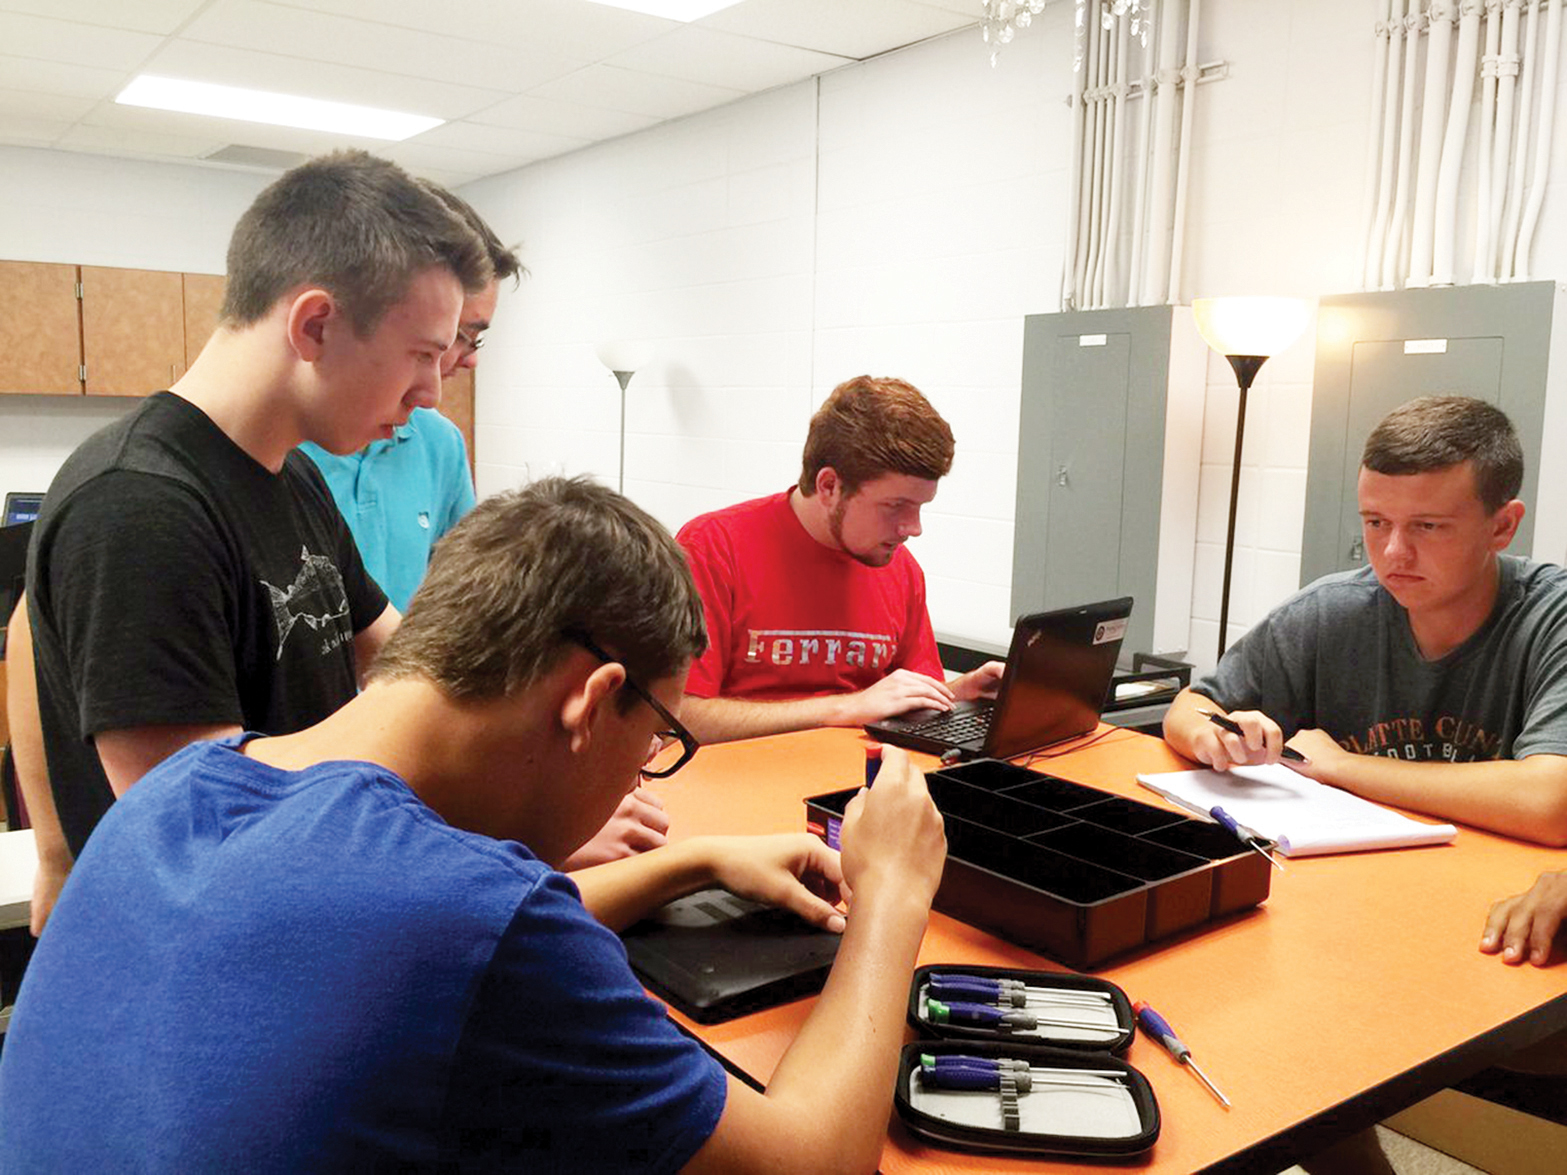 Contributed photo Members of the Platte County High School's Cyber Crew (from left): Bradley Morgan, Will Valentine, Cody Bishop, John Teer and Zach Pixler work on a Google Chromebook tablet during class. The district started a special class to allow students the chance to help resolve issues with the new devices.